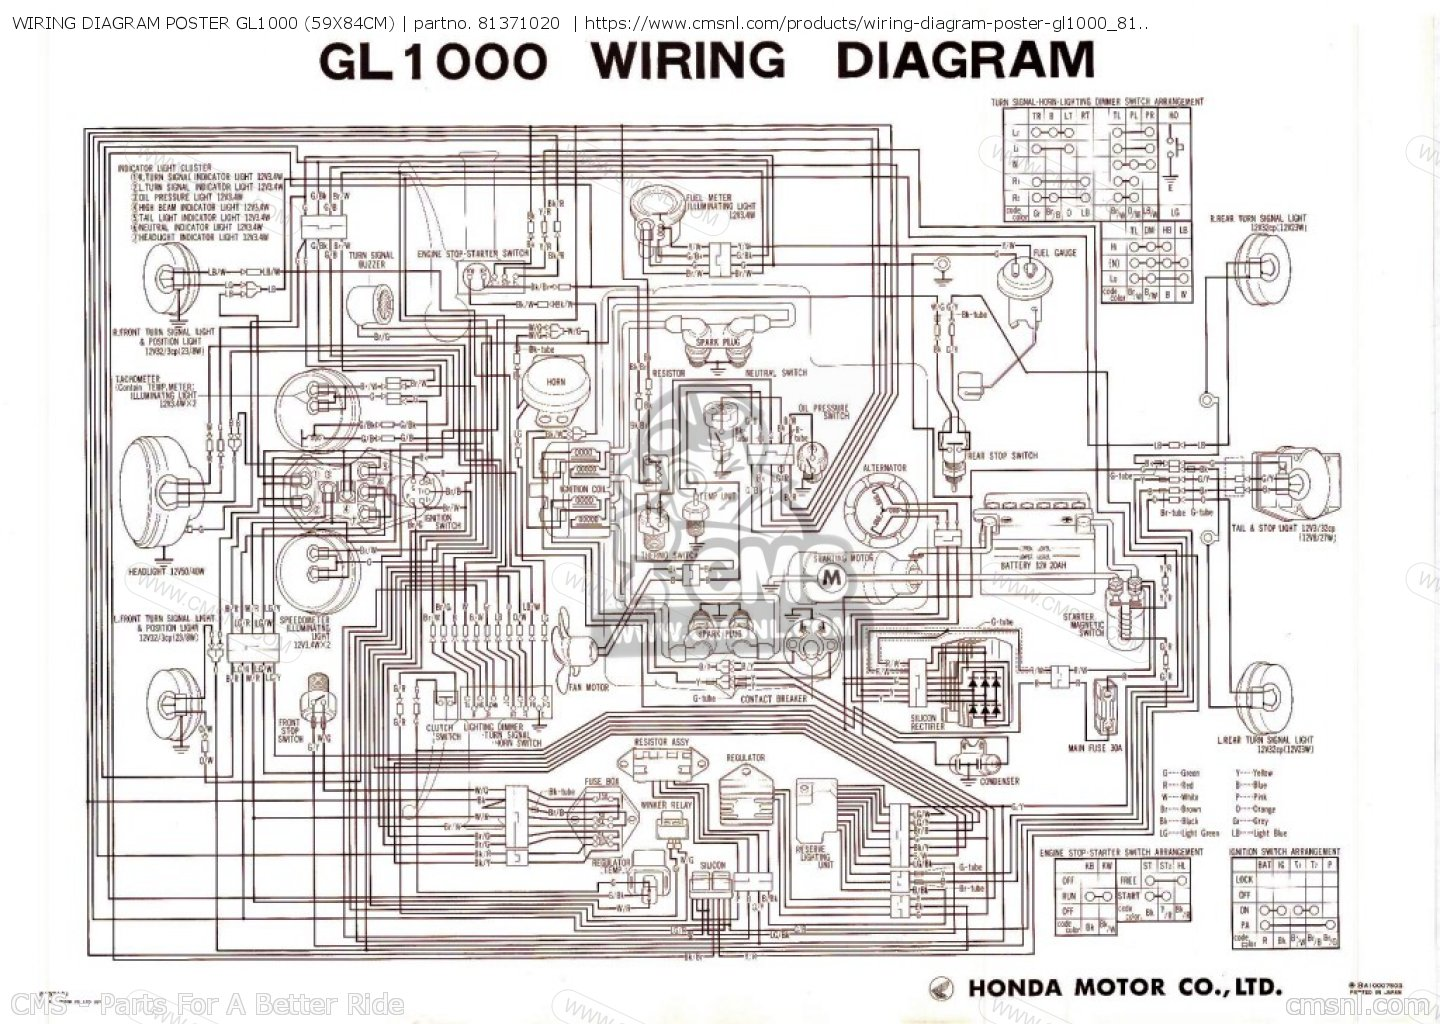 wiring diagram poster gl1000 59x84cm other 81371020 wiring diagram poster gl1000 59x84cm photo